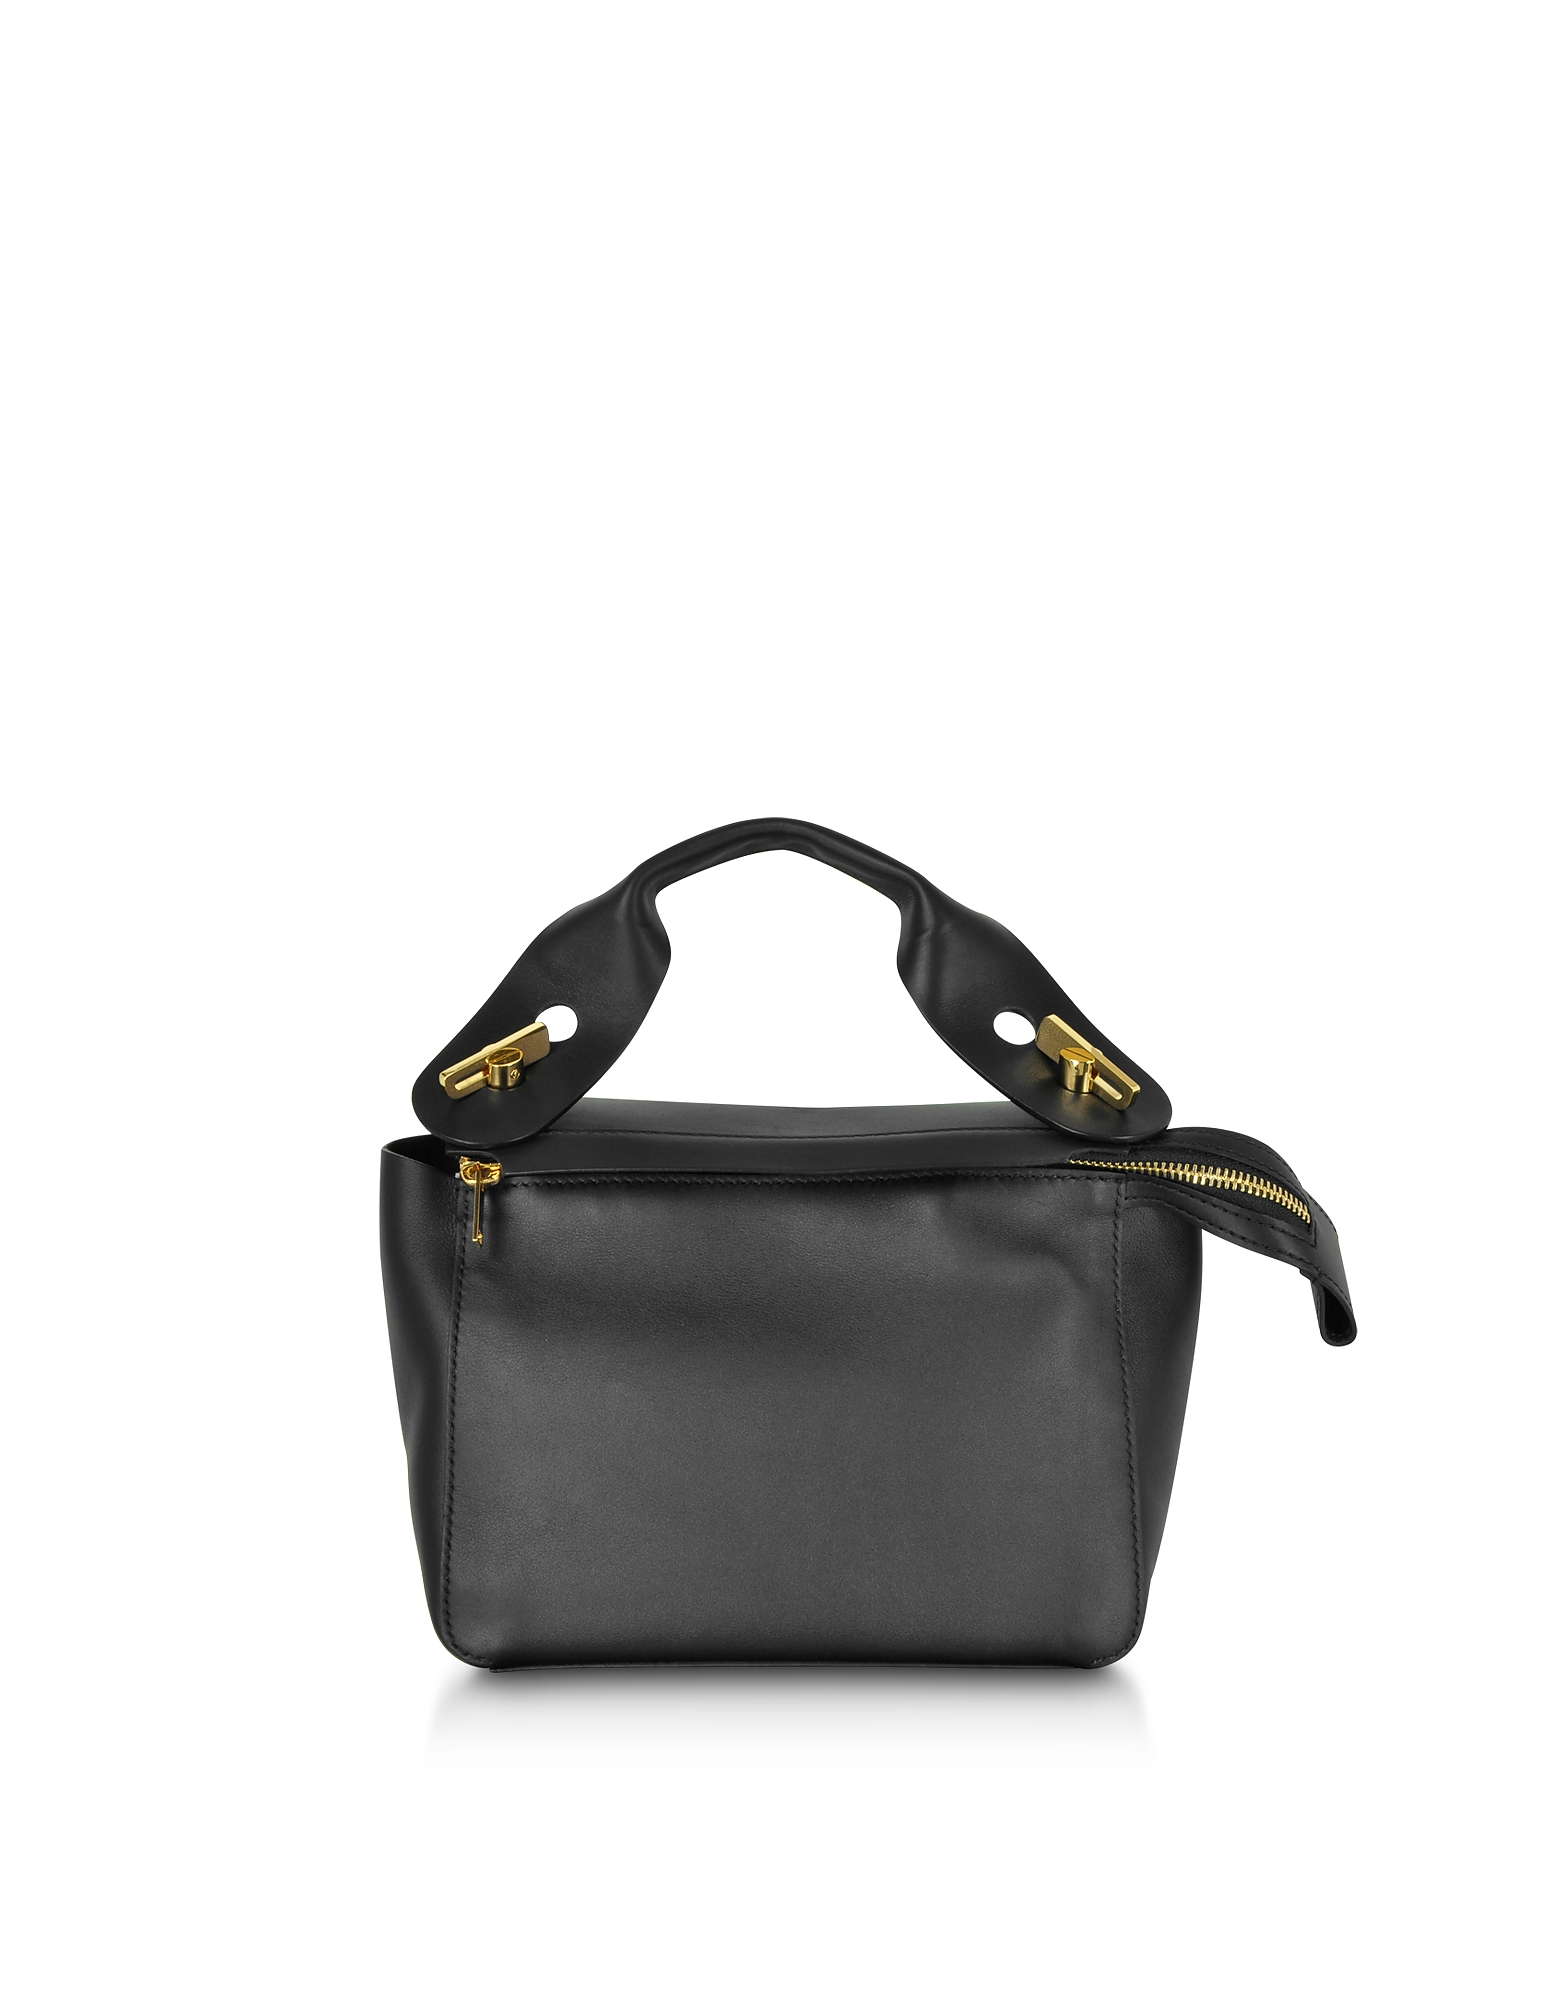 Image of Sophie Hulme Designer Handbags, Soft Leather Bolt Shoulder Bag